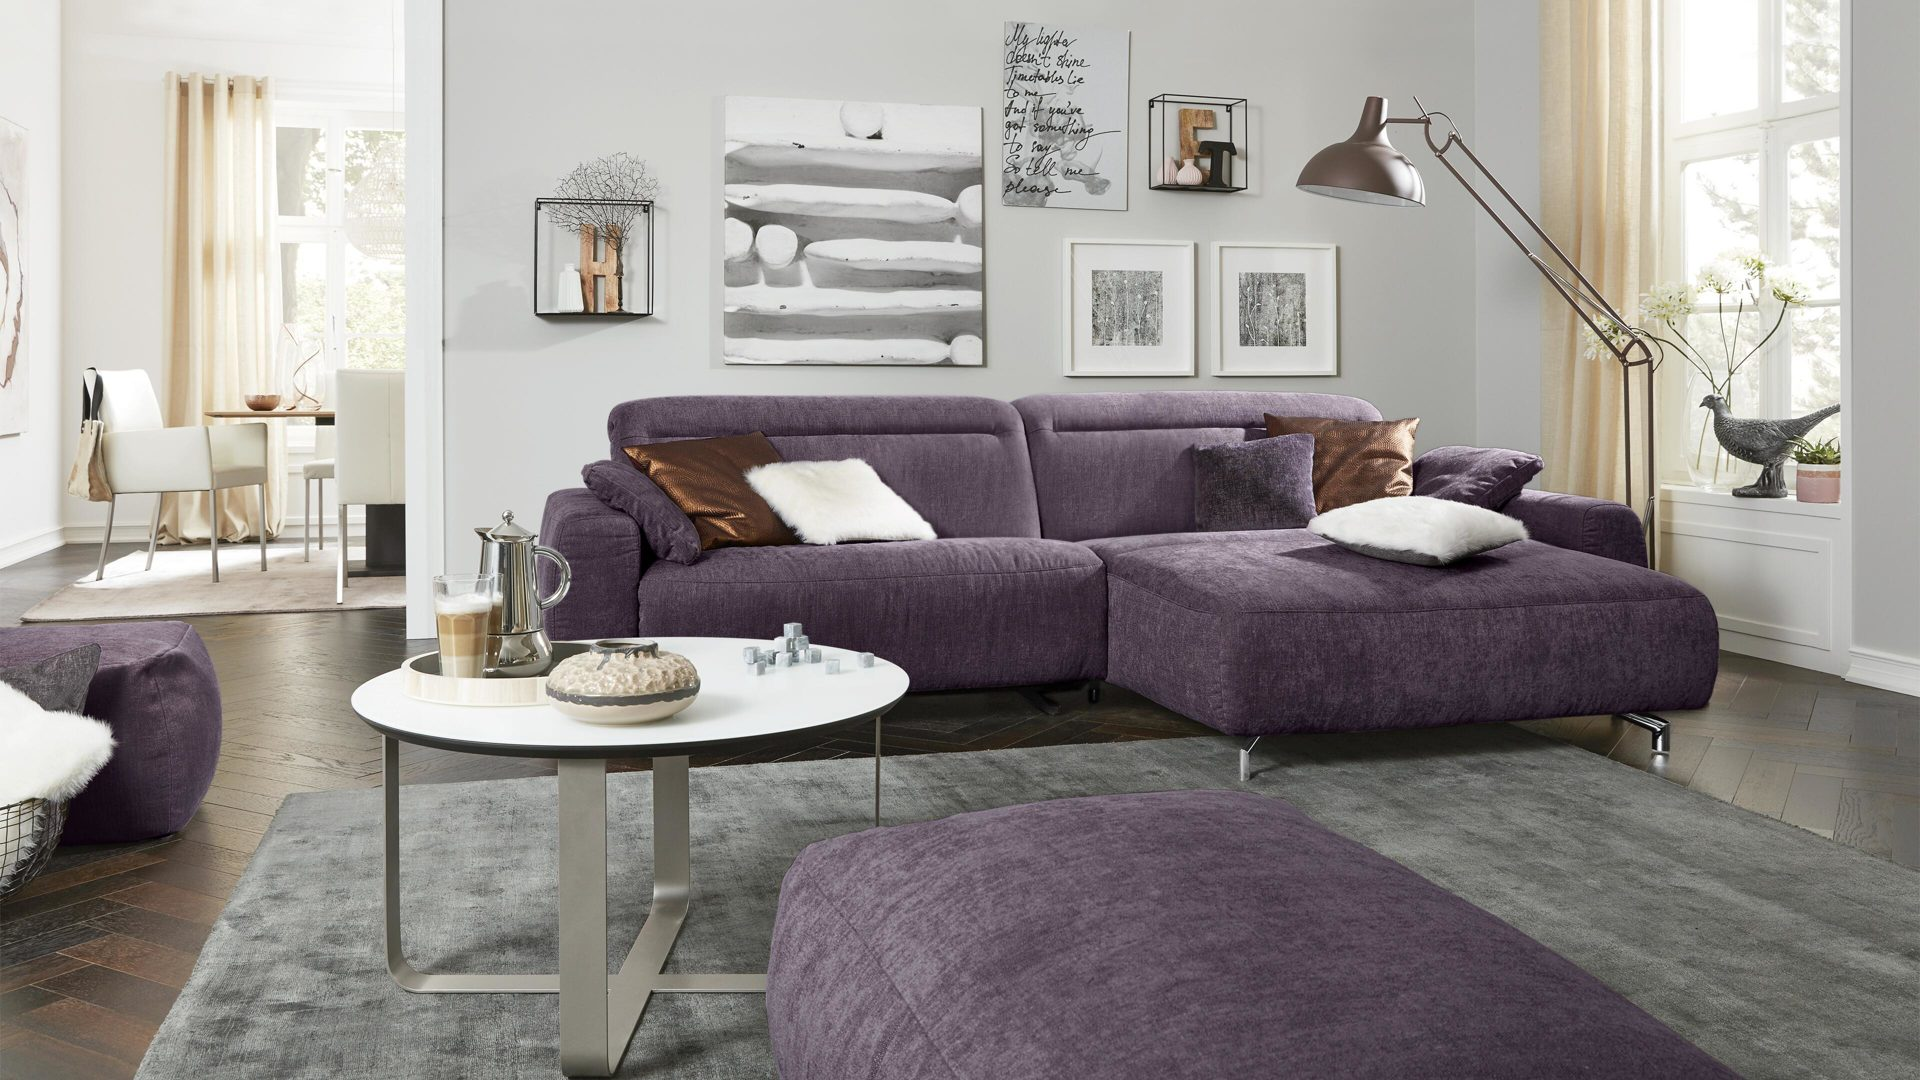 Ecksofa Trends Interliving Sofa Serie 4151 Eckkombination Purplefarbener